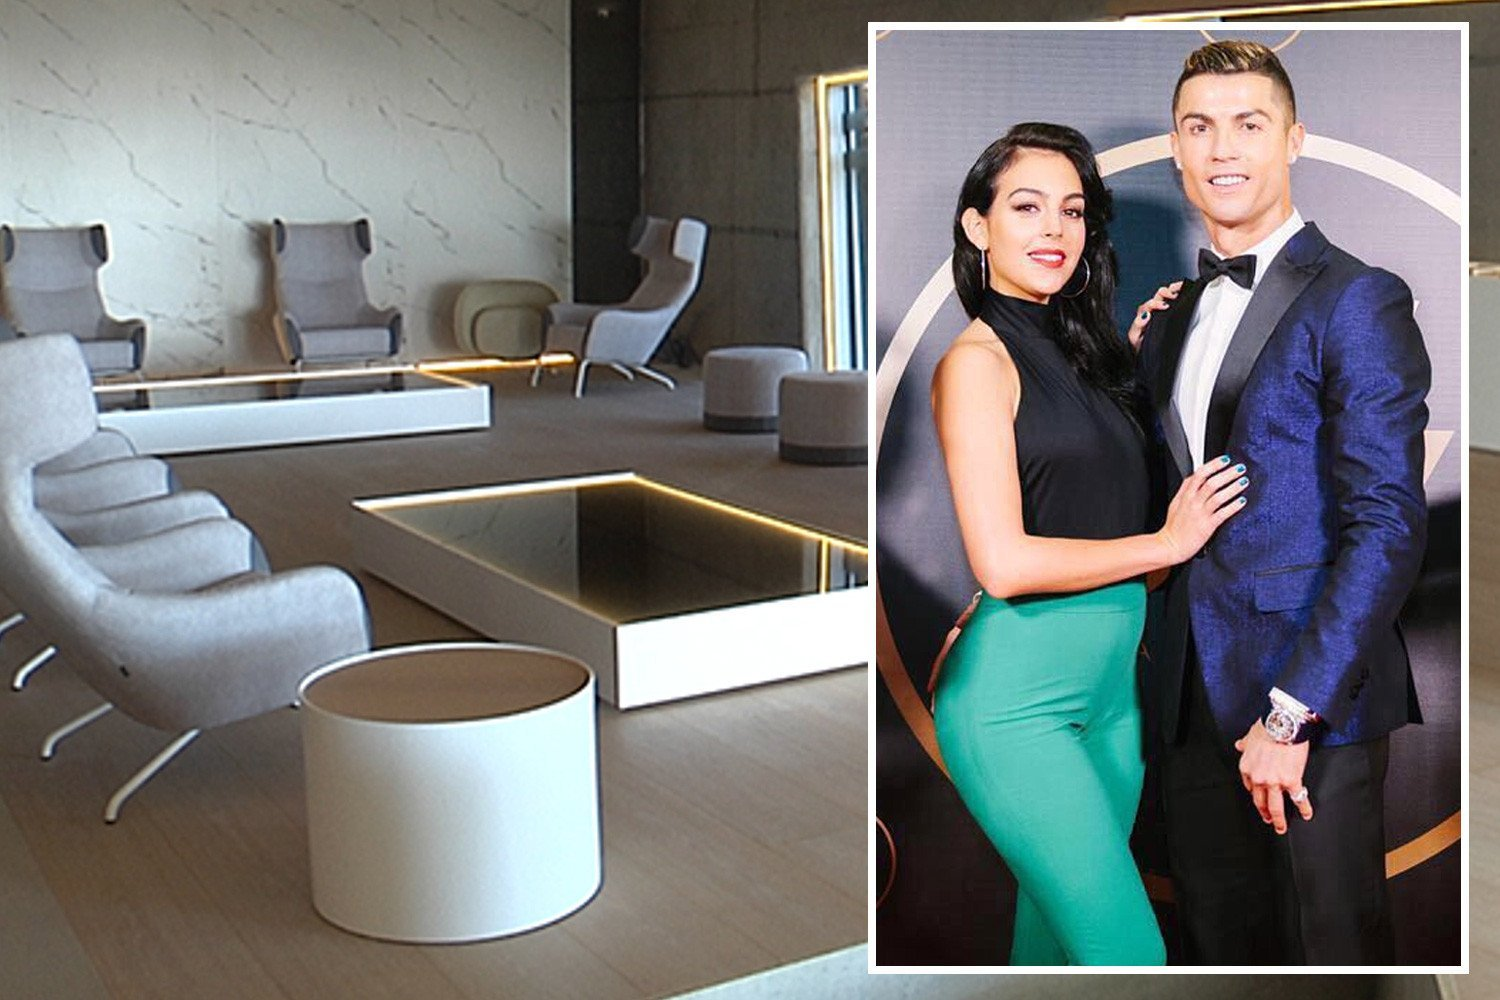 Cristiano Ronaldo to open state-of-the-art hair implant centre in Madrid… managed by Georgina Rodriguez